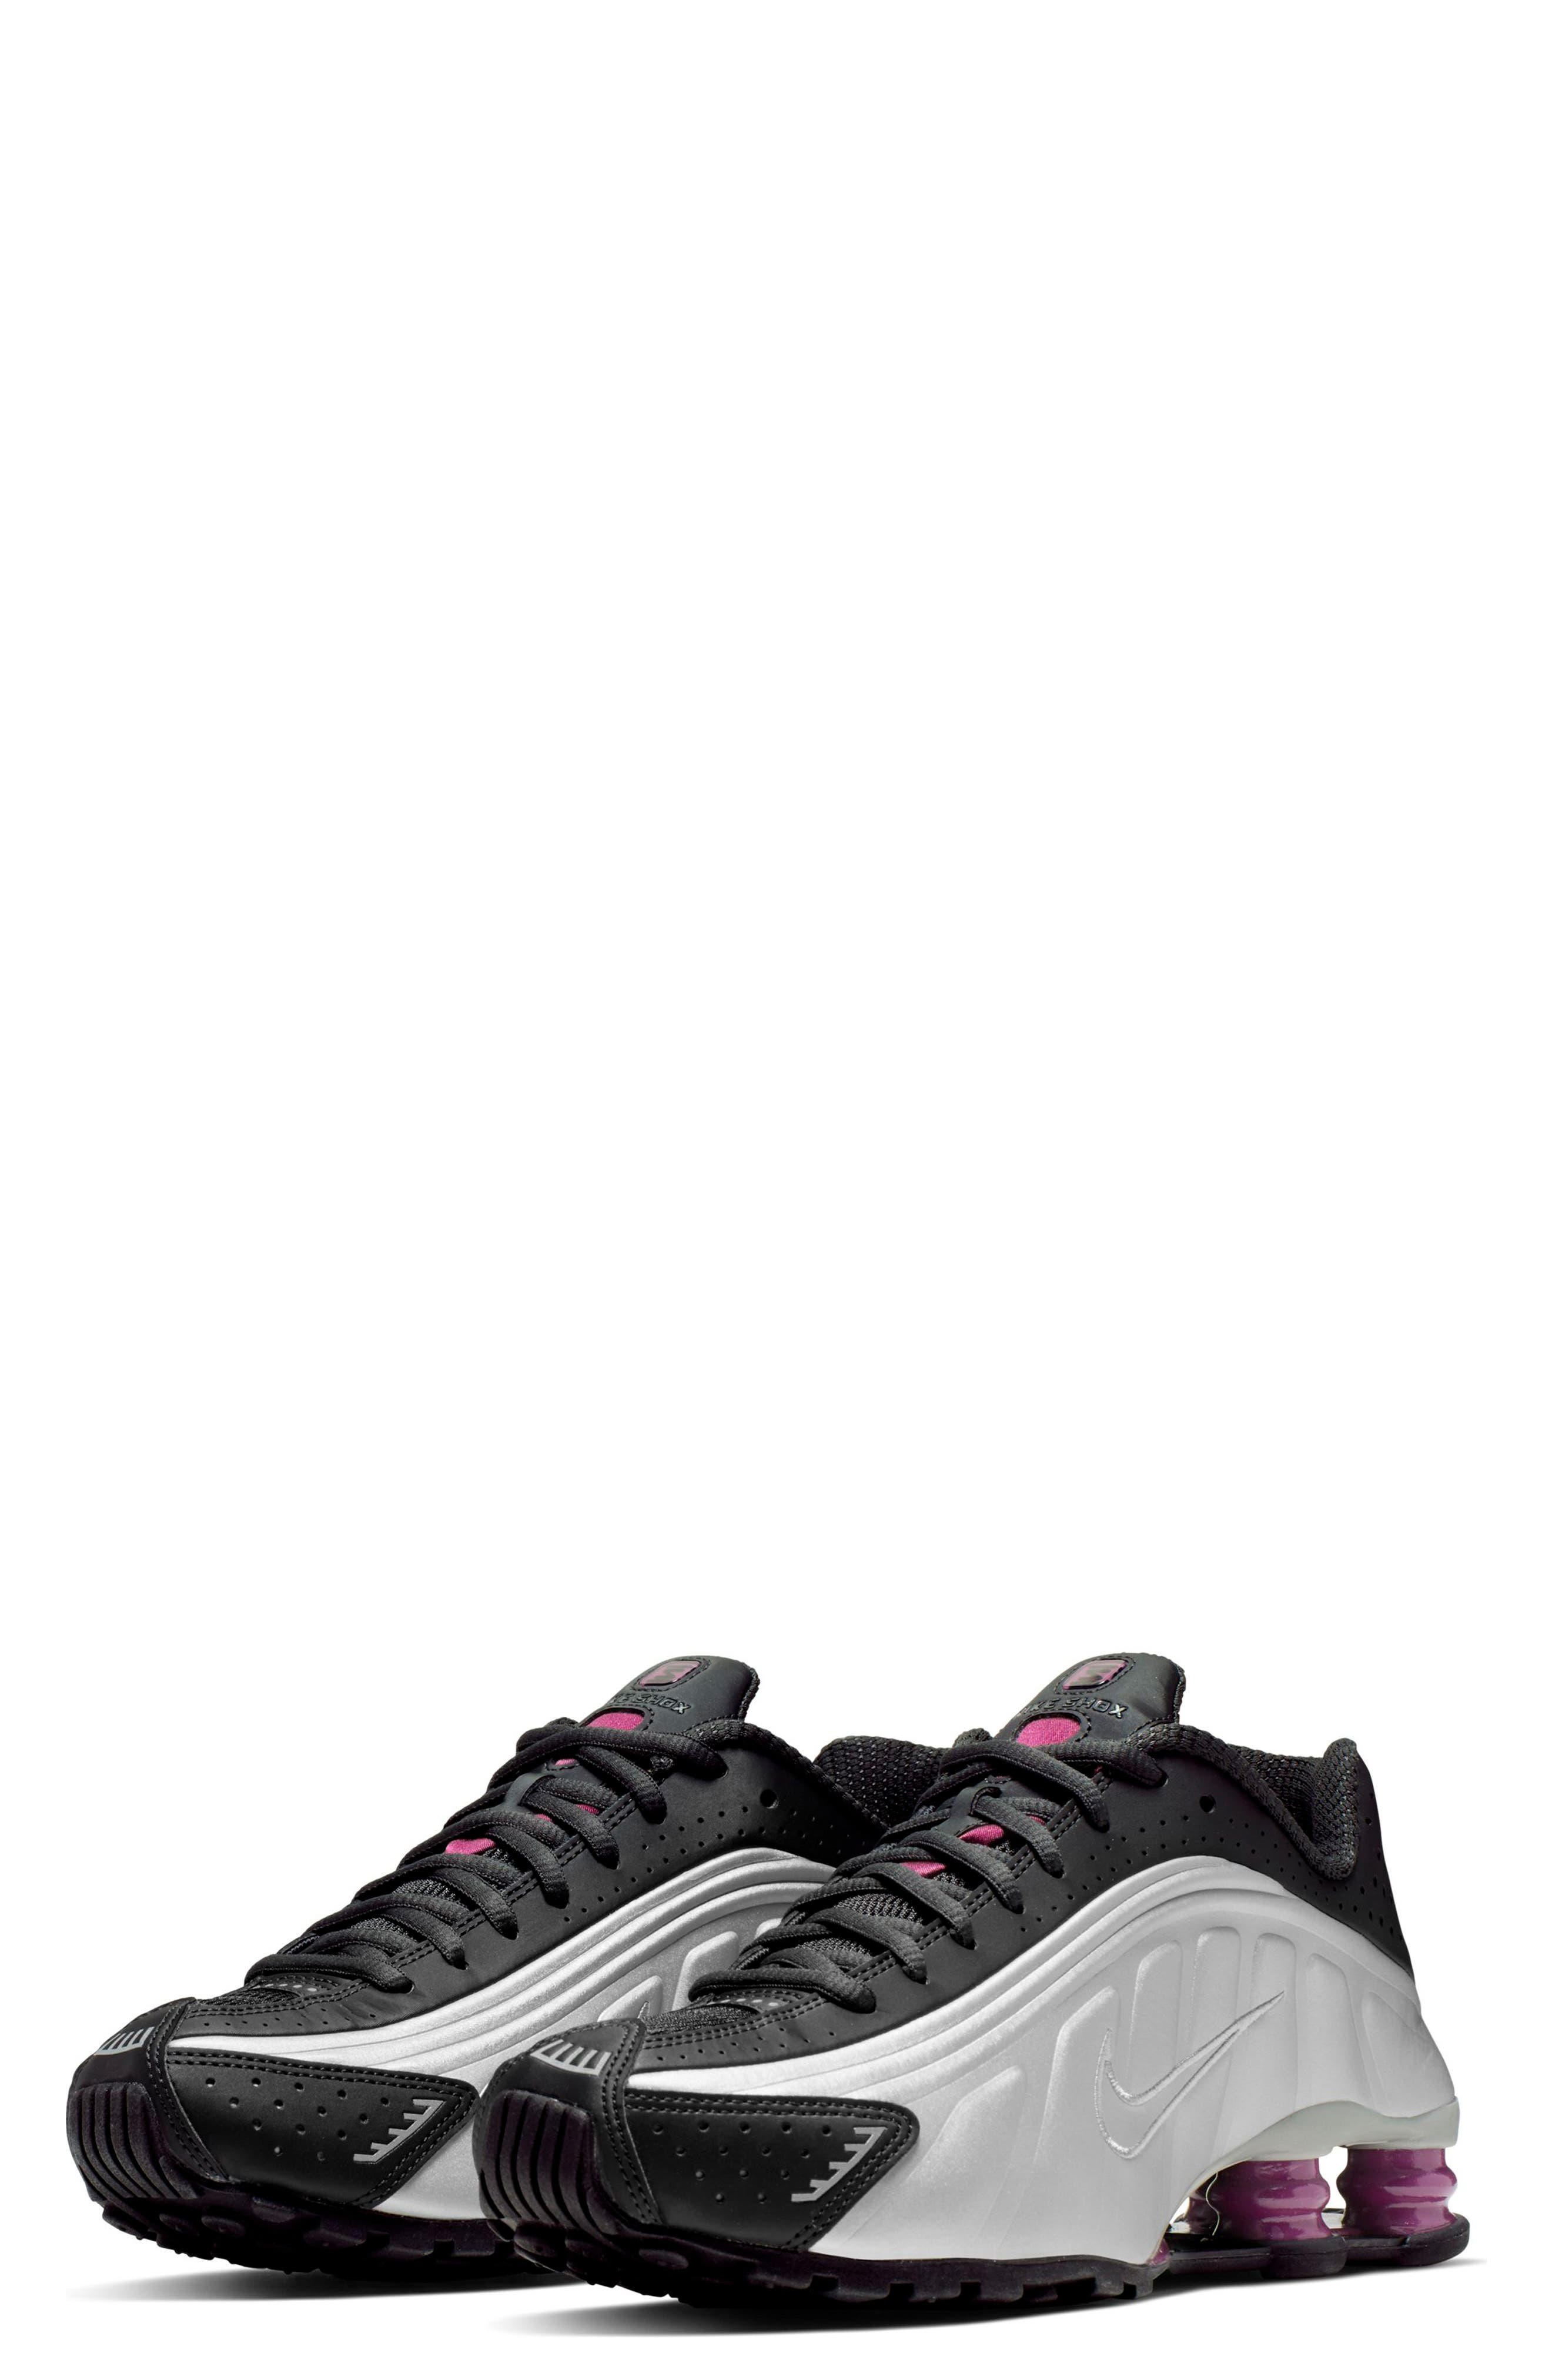 detailed look 8195d 24c80 womens nike shox | Compare Prices on GoSale.com